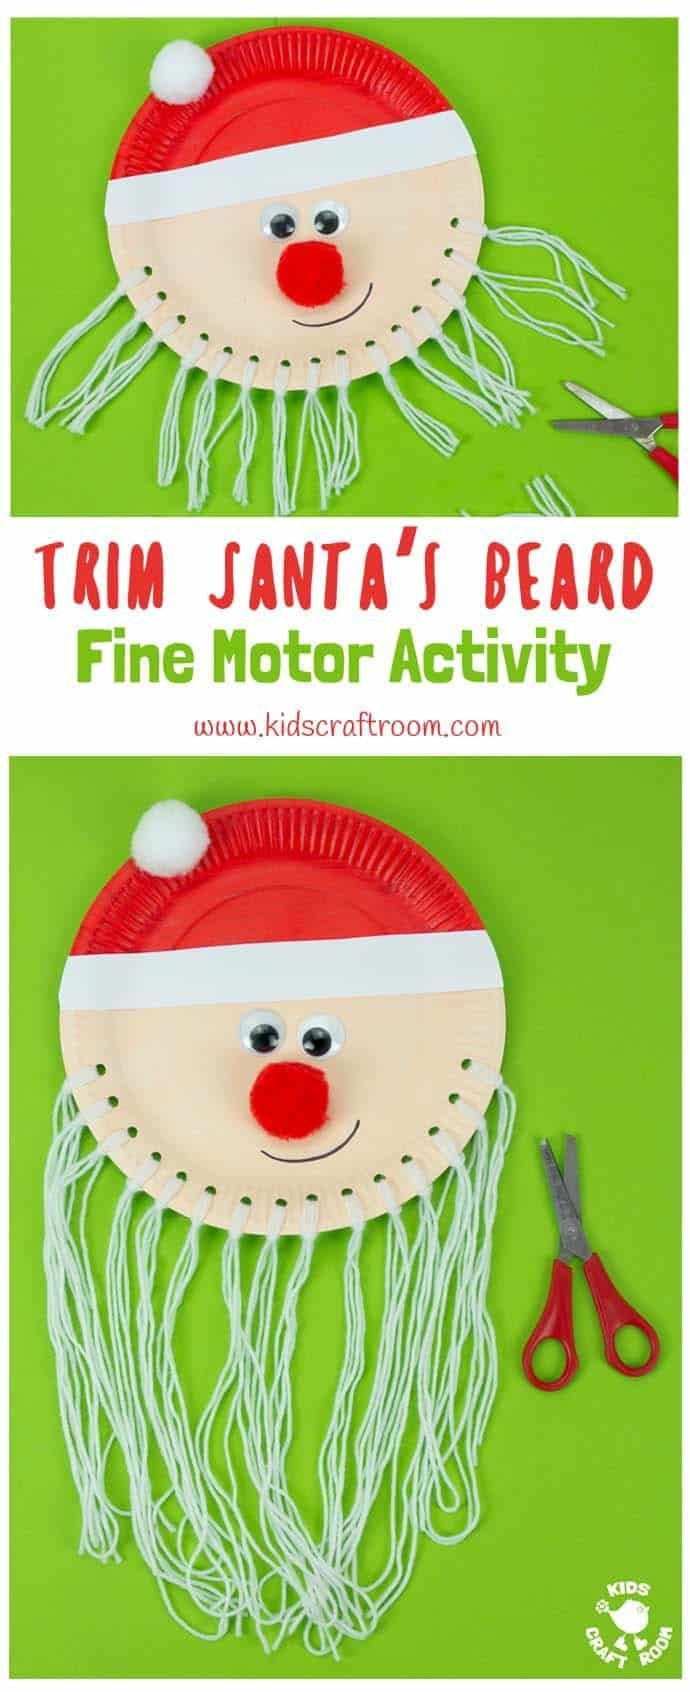 Are you looking for an educational Santa crafting idea that you can enjoy with your kids? #bastelidee #diyforchildren #of #herren